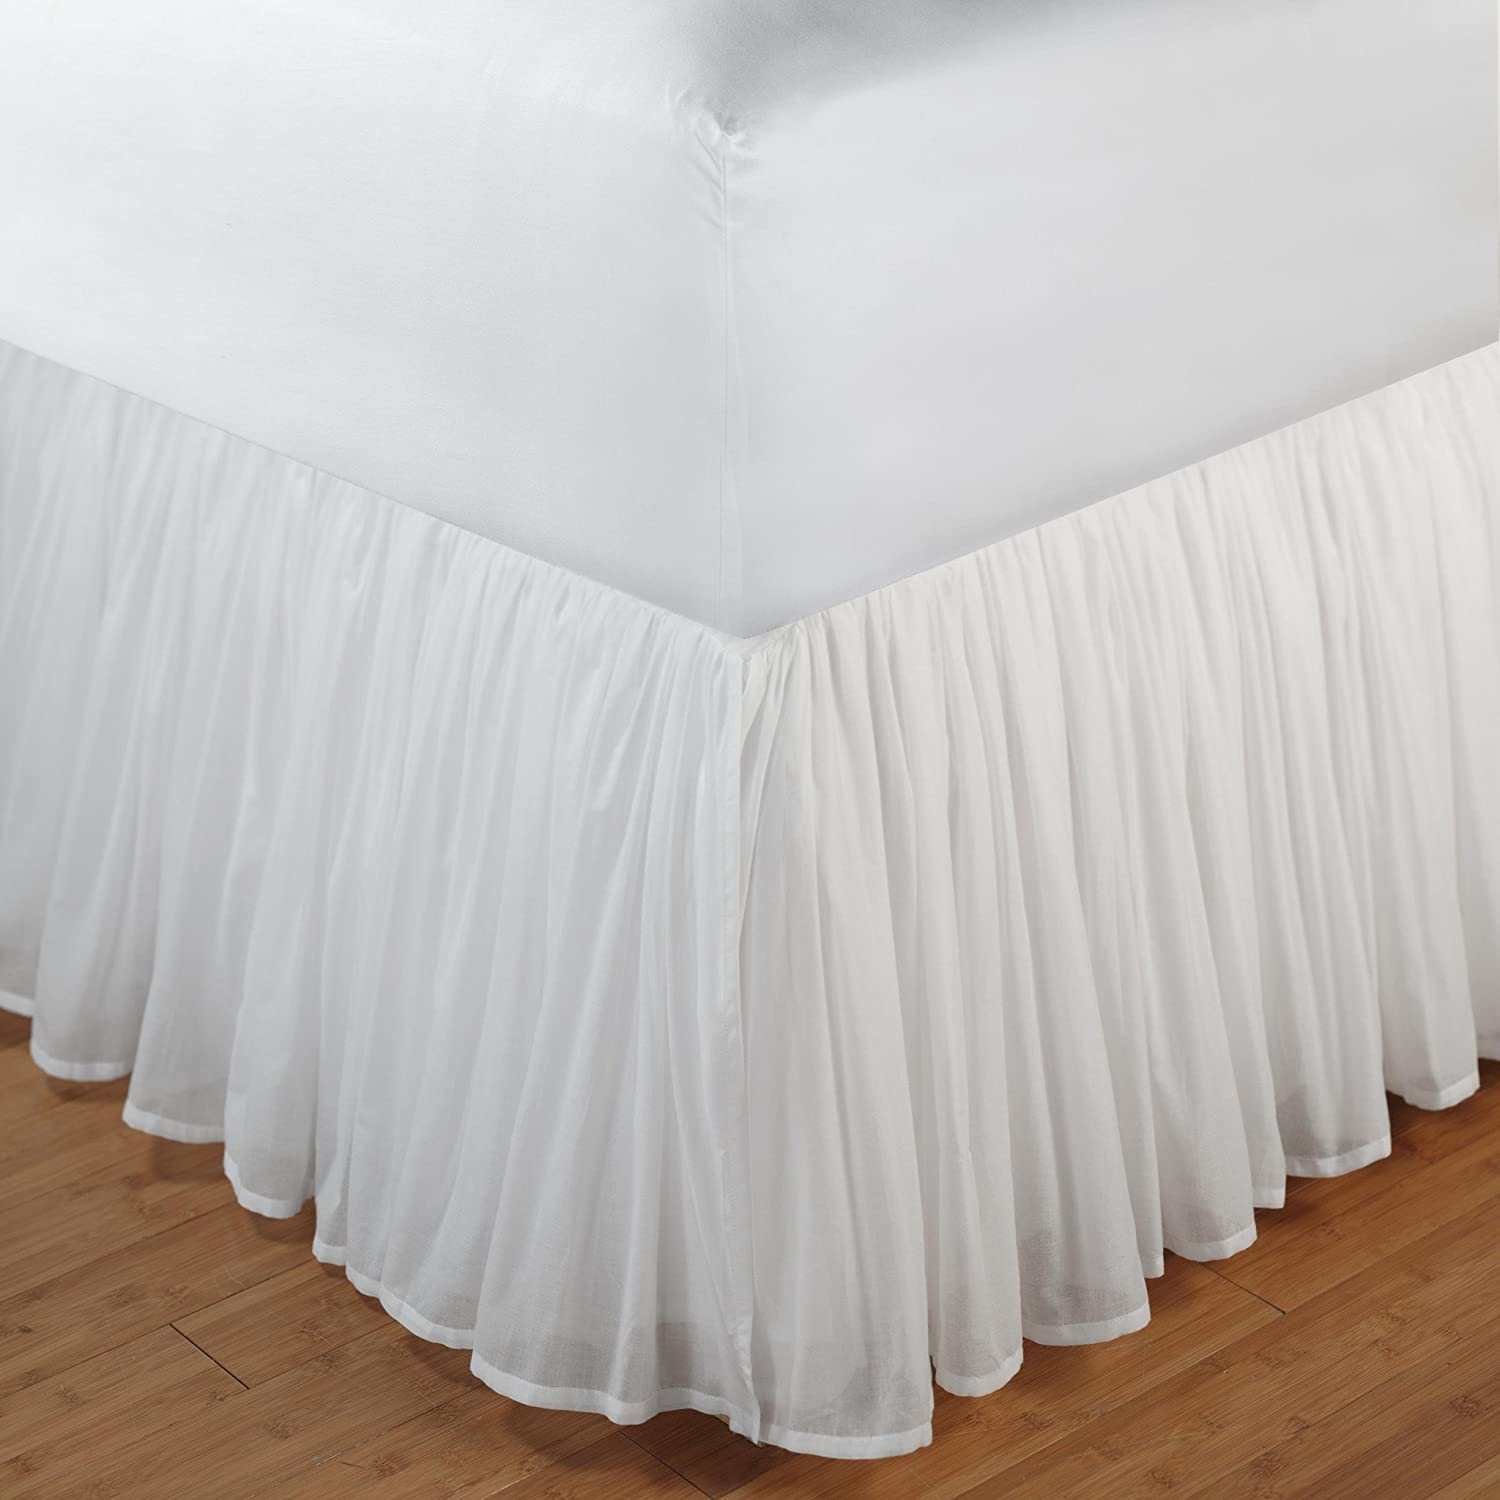 Greenland Home Fashions Cotton Voile Bed Skirt